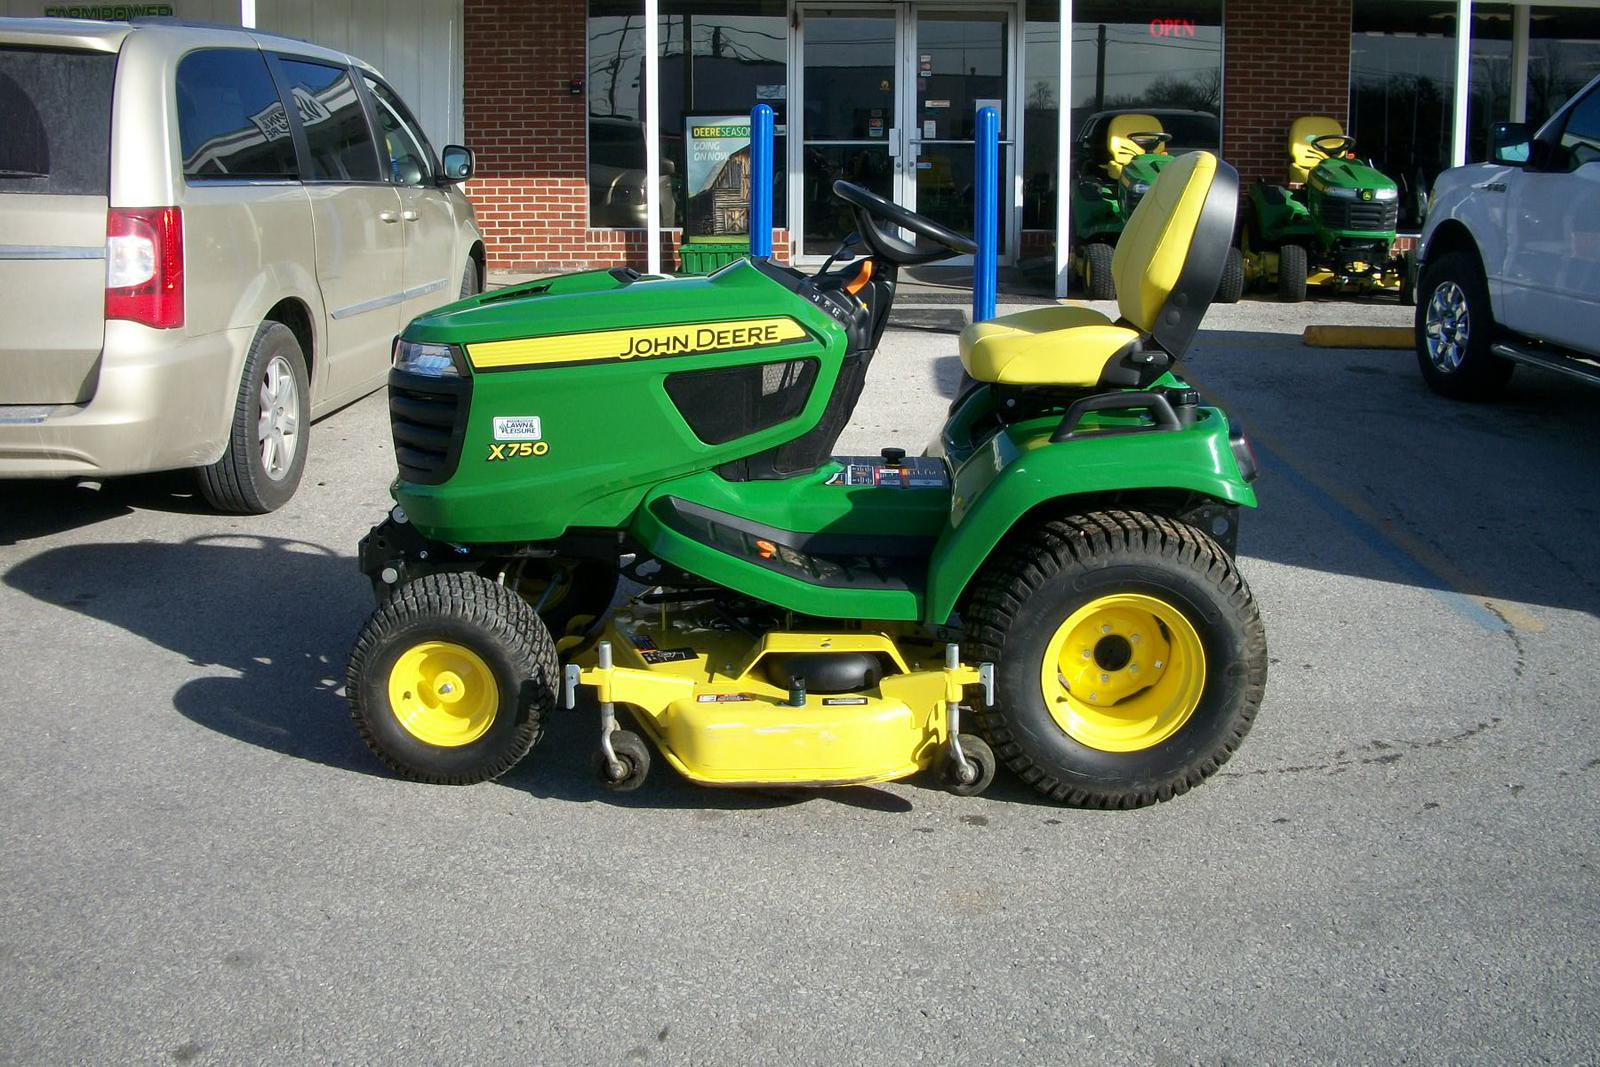 004?v=1517004530663 2017 john deere x750 for sale in columbia, mo farm power lawn